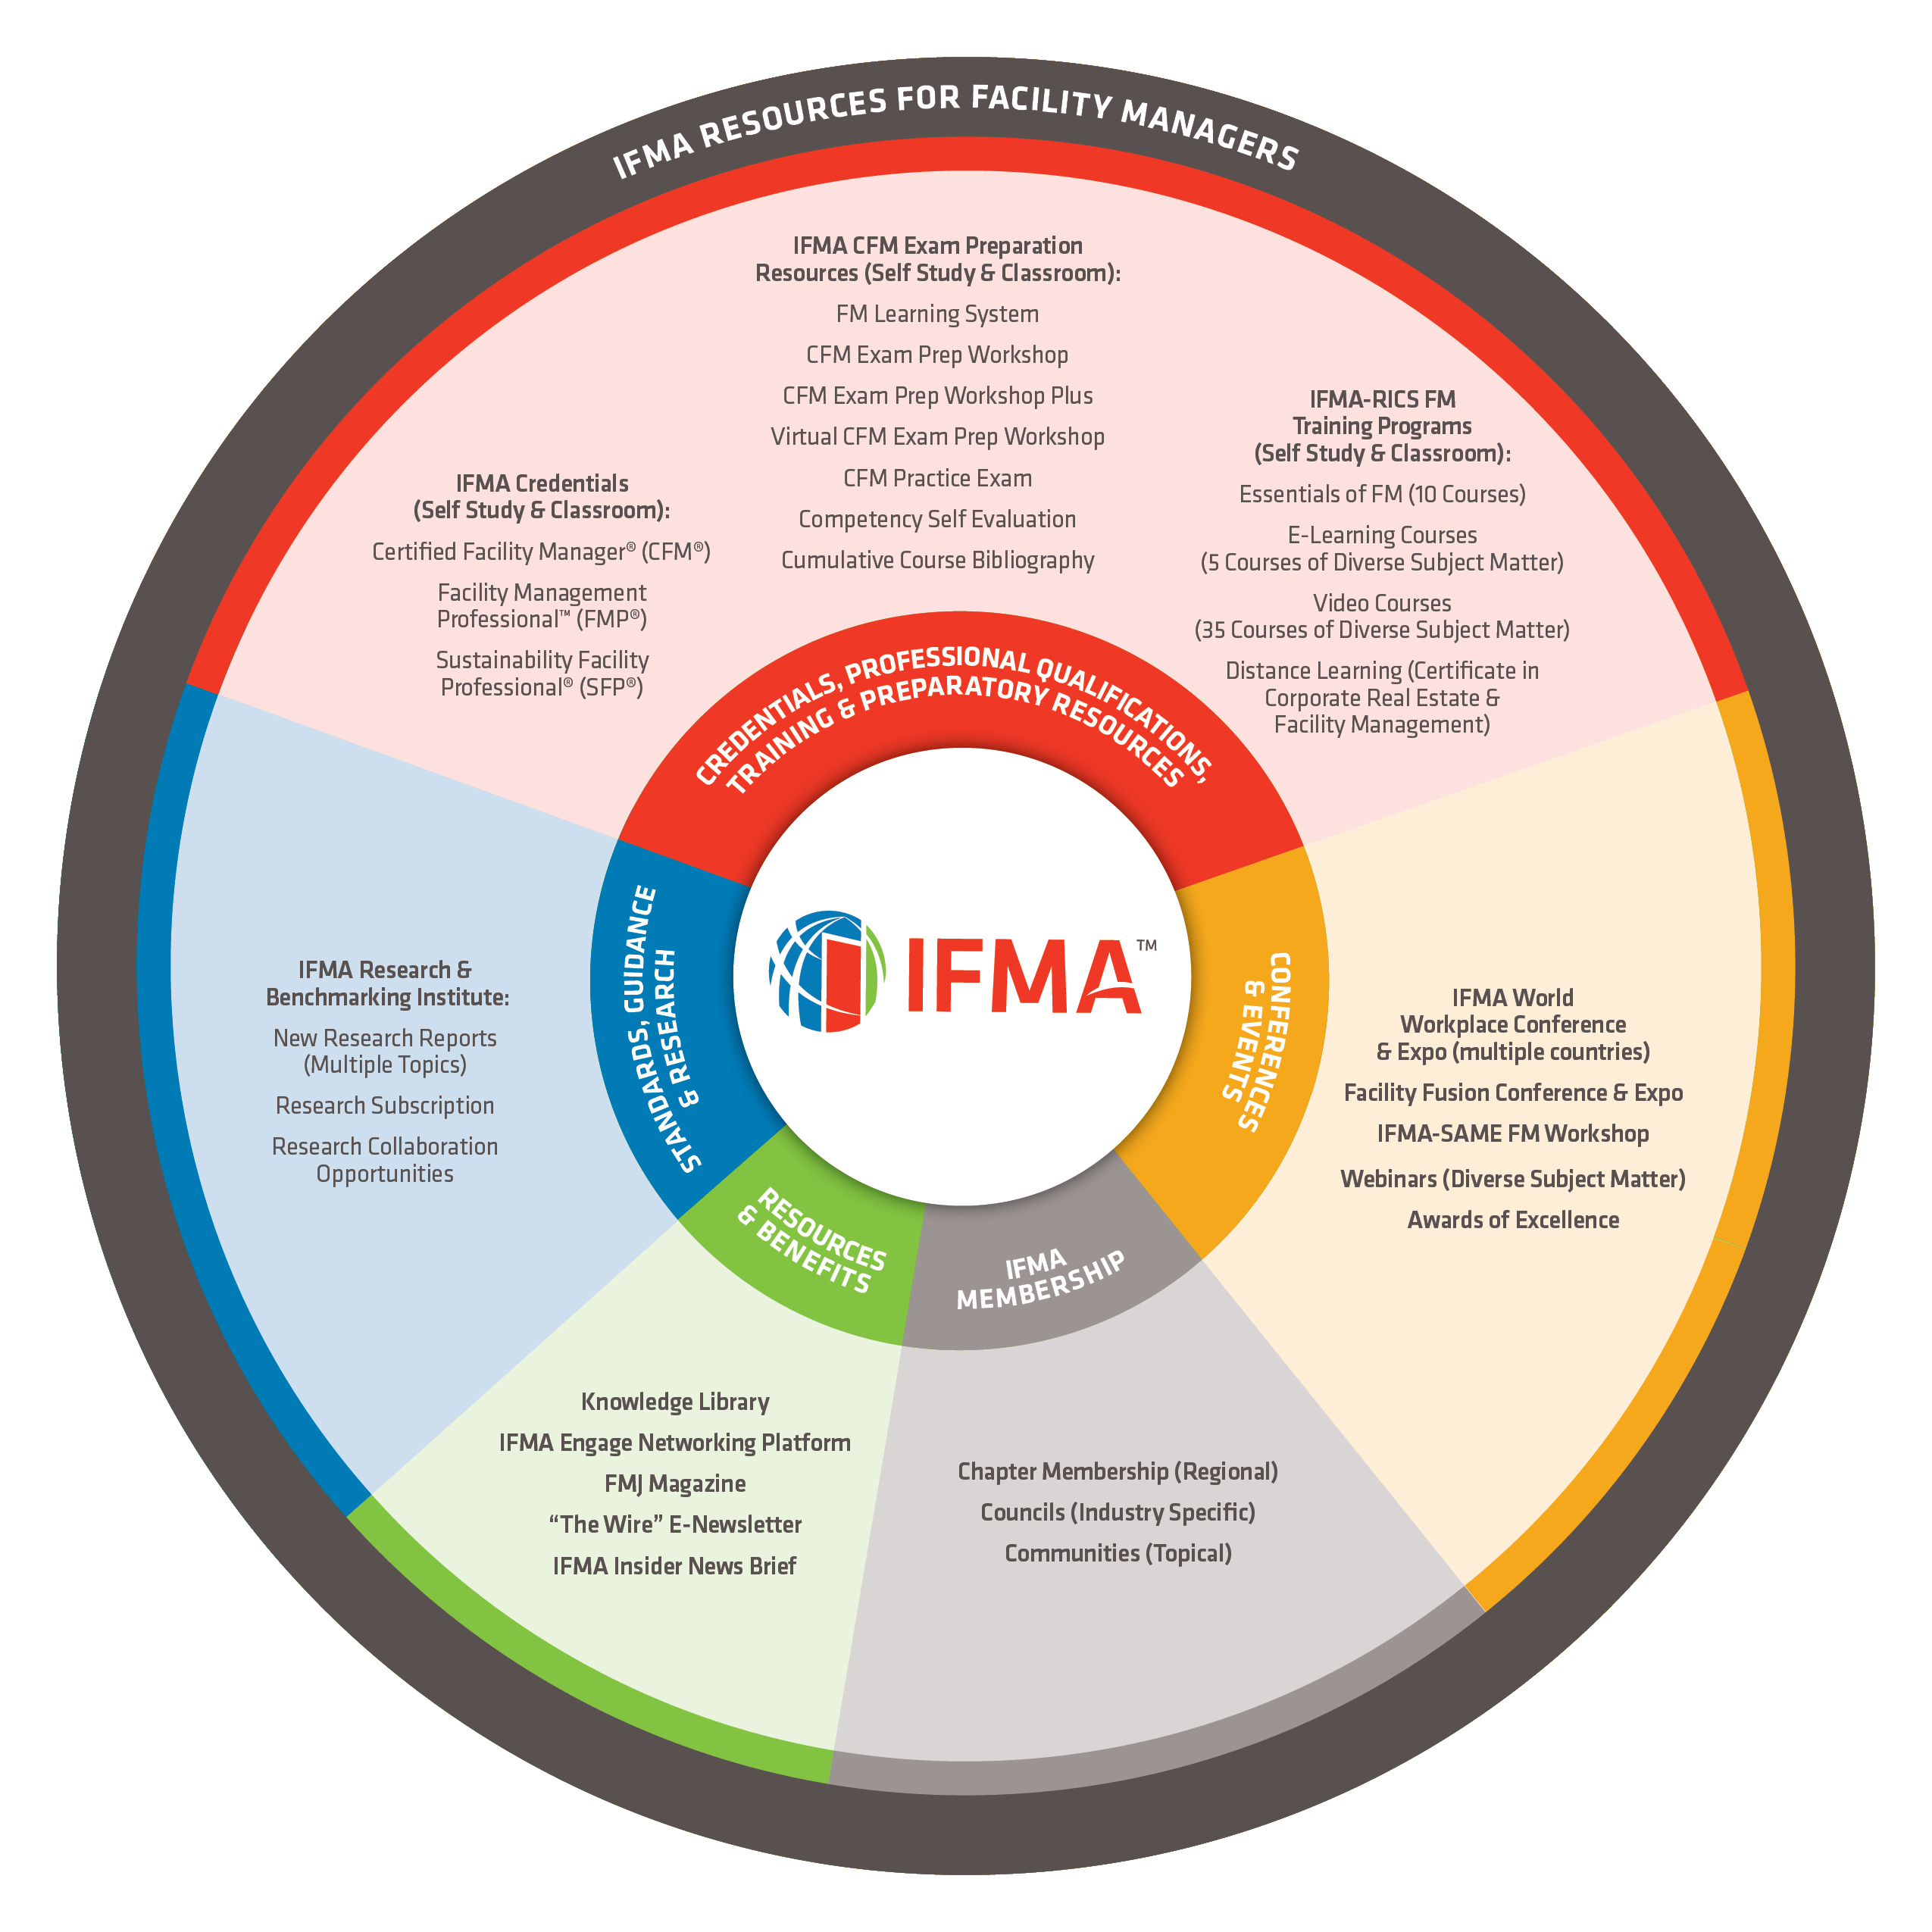 IFMA Resources For Facility Managers